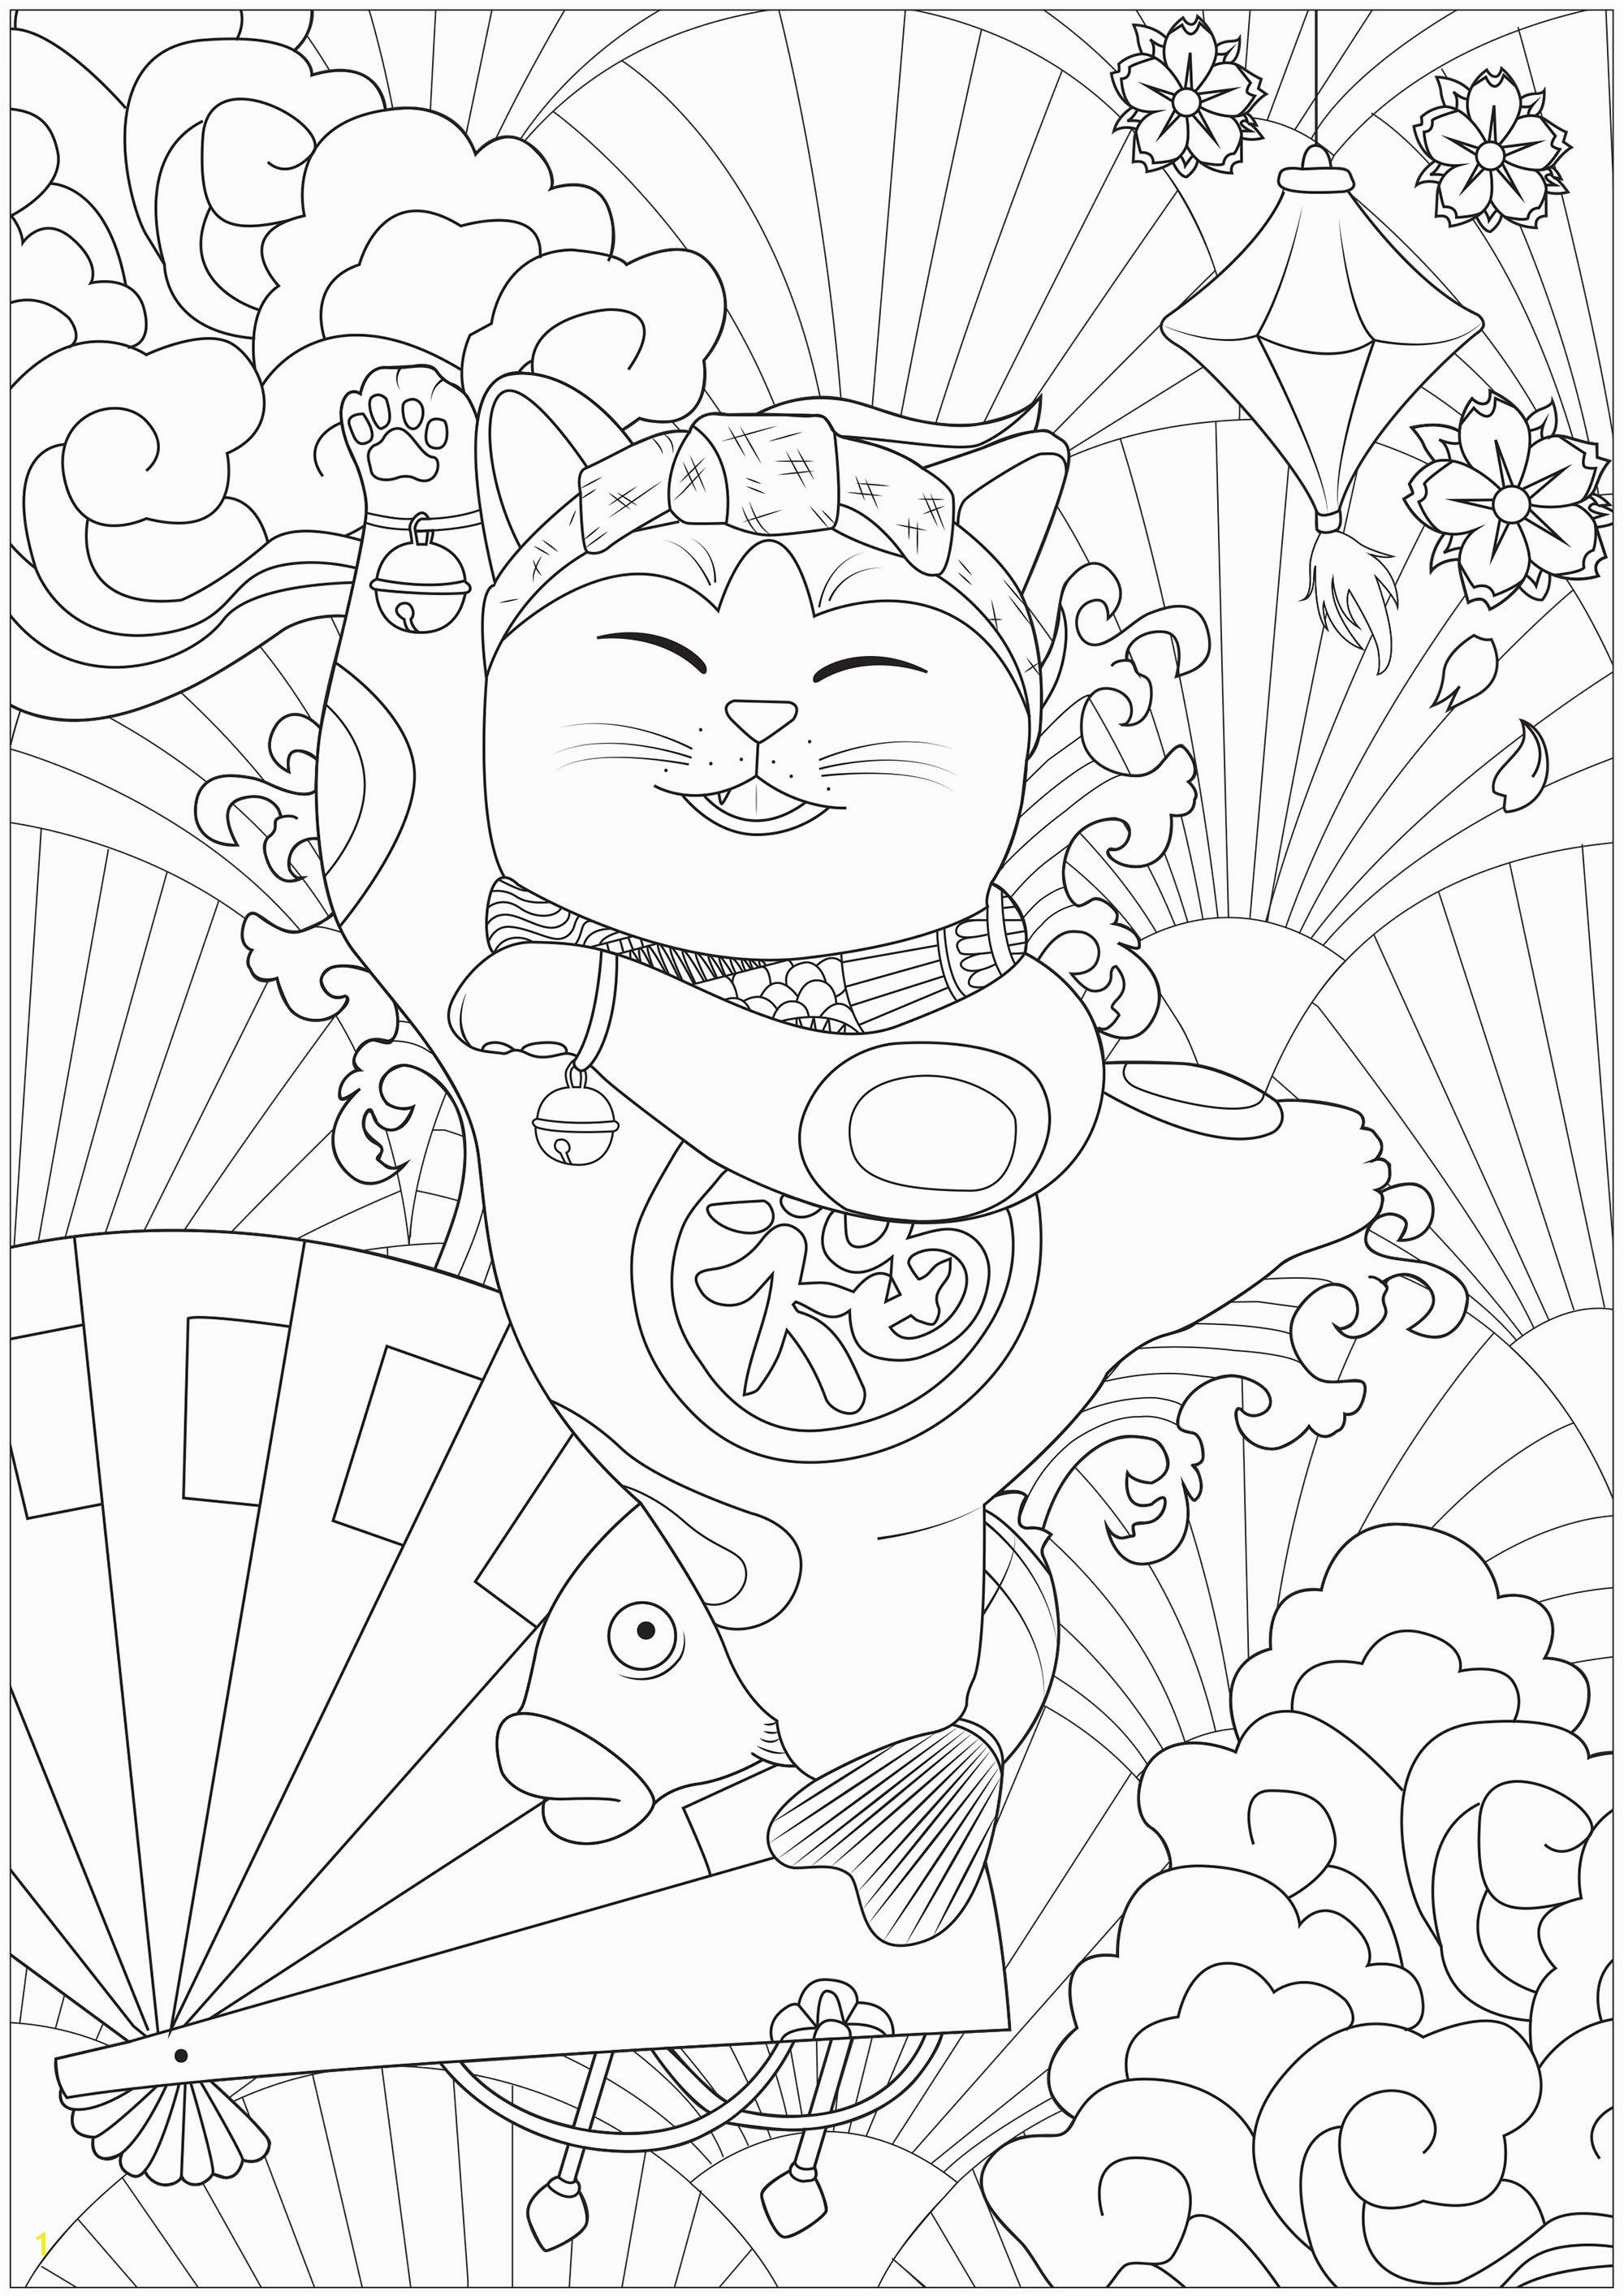 Dancing Maneki Neko cat Japan Adult Coloring Pages